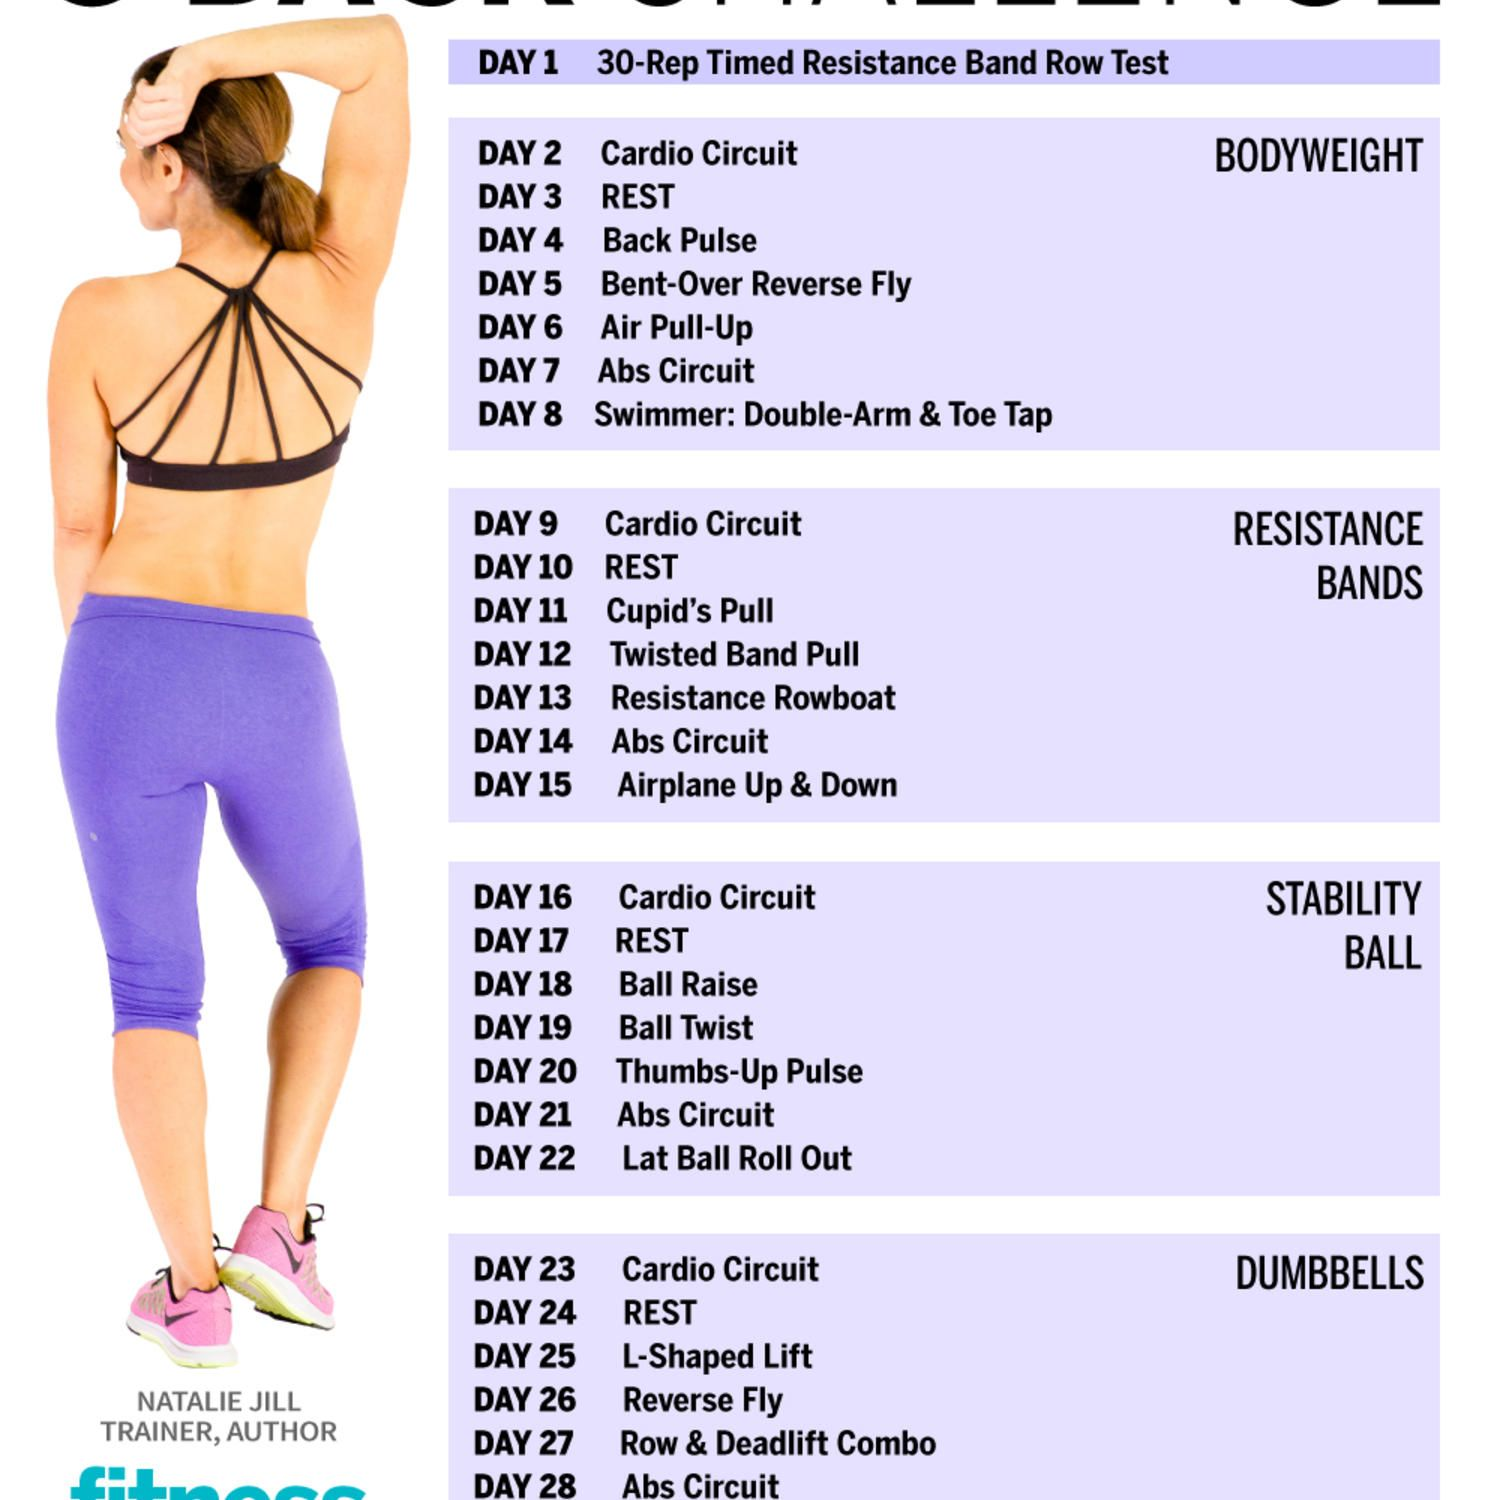 hiit arm circuit pulseos wiring schematic diagram beginner hiit workouts at home 17 best low impact cardio workout